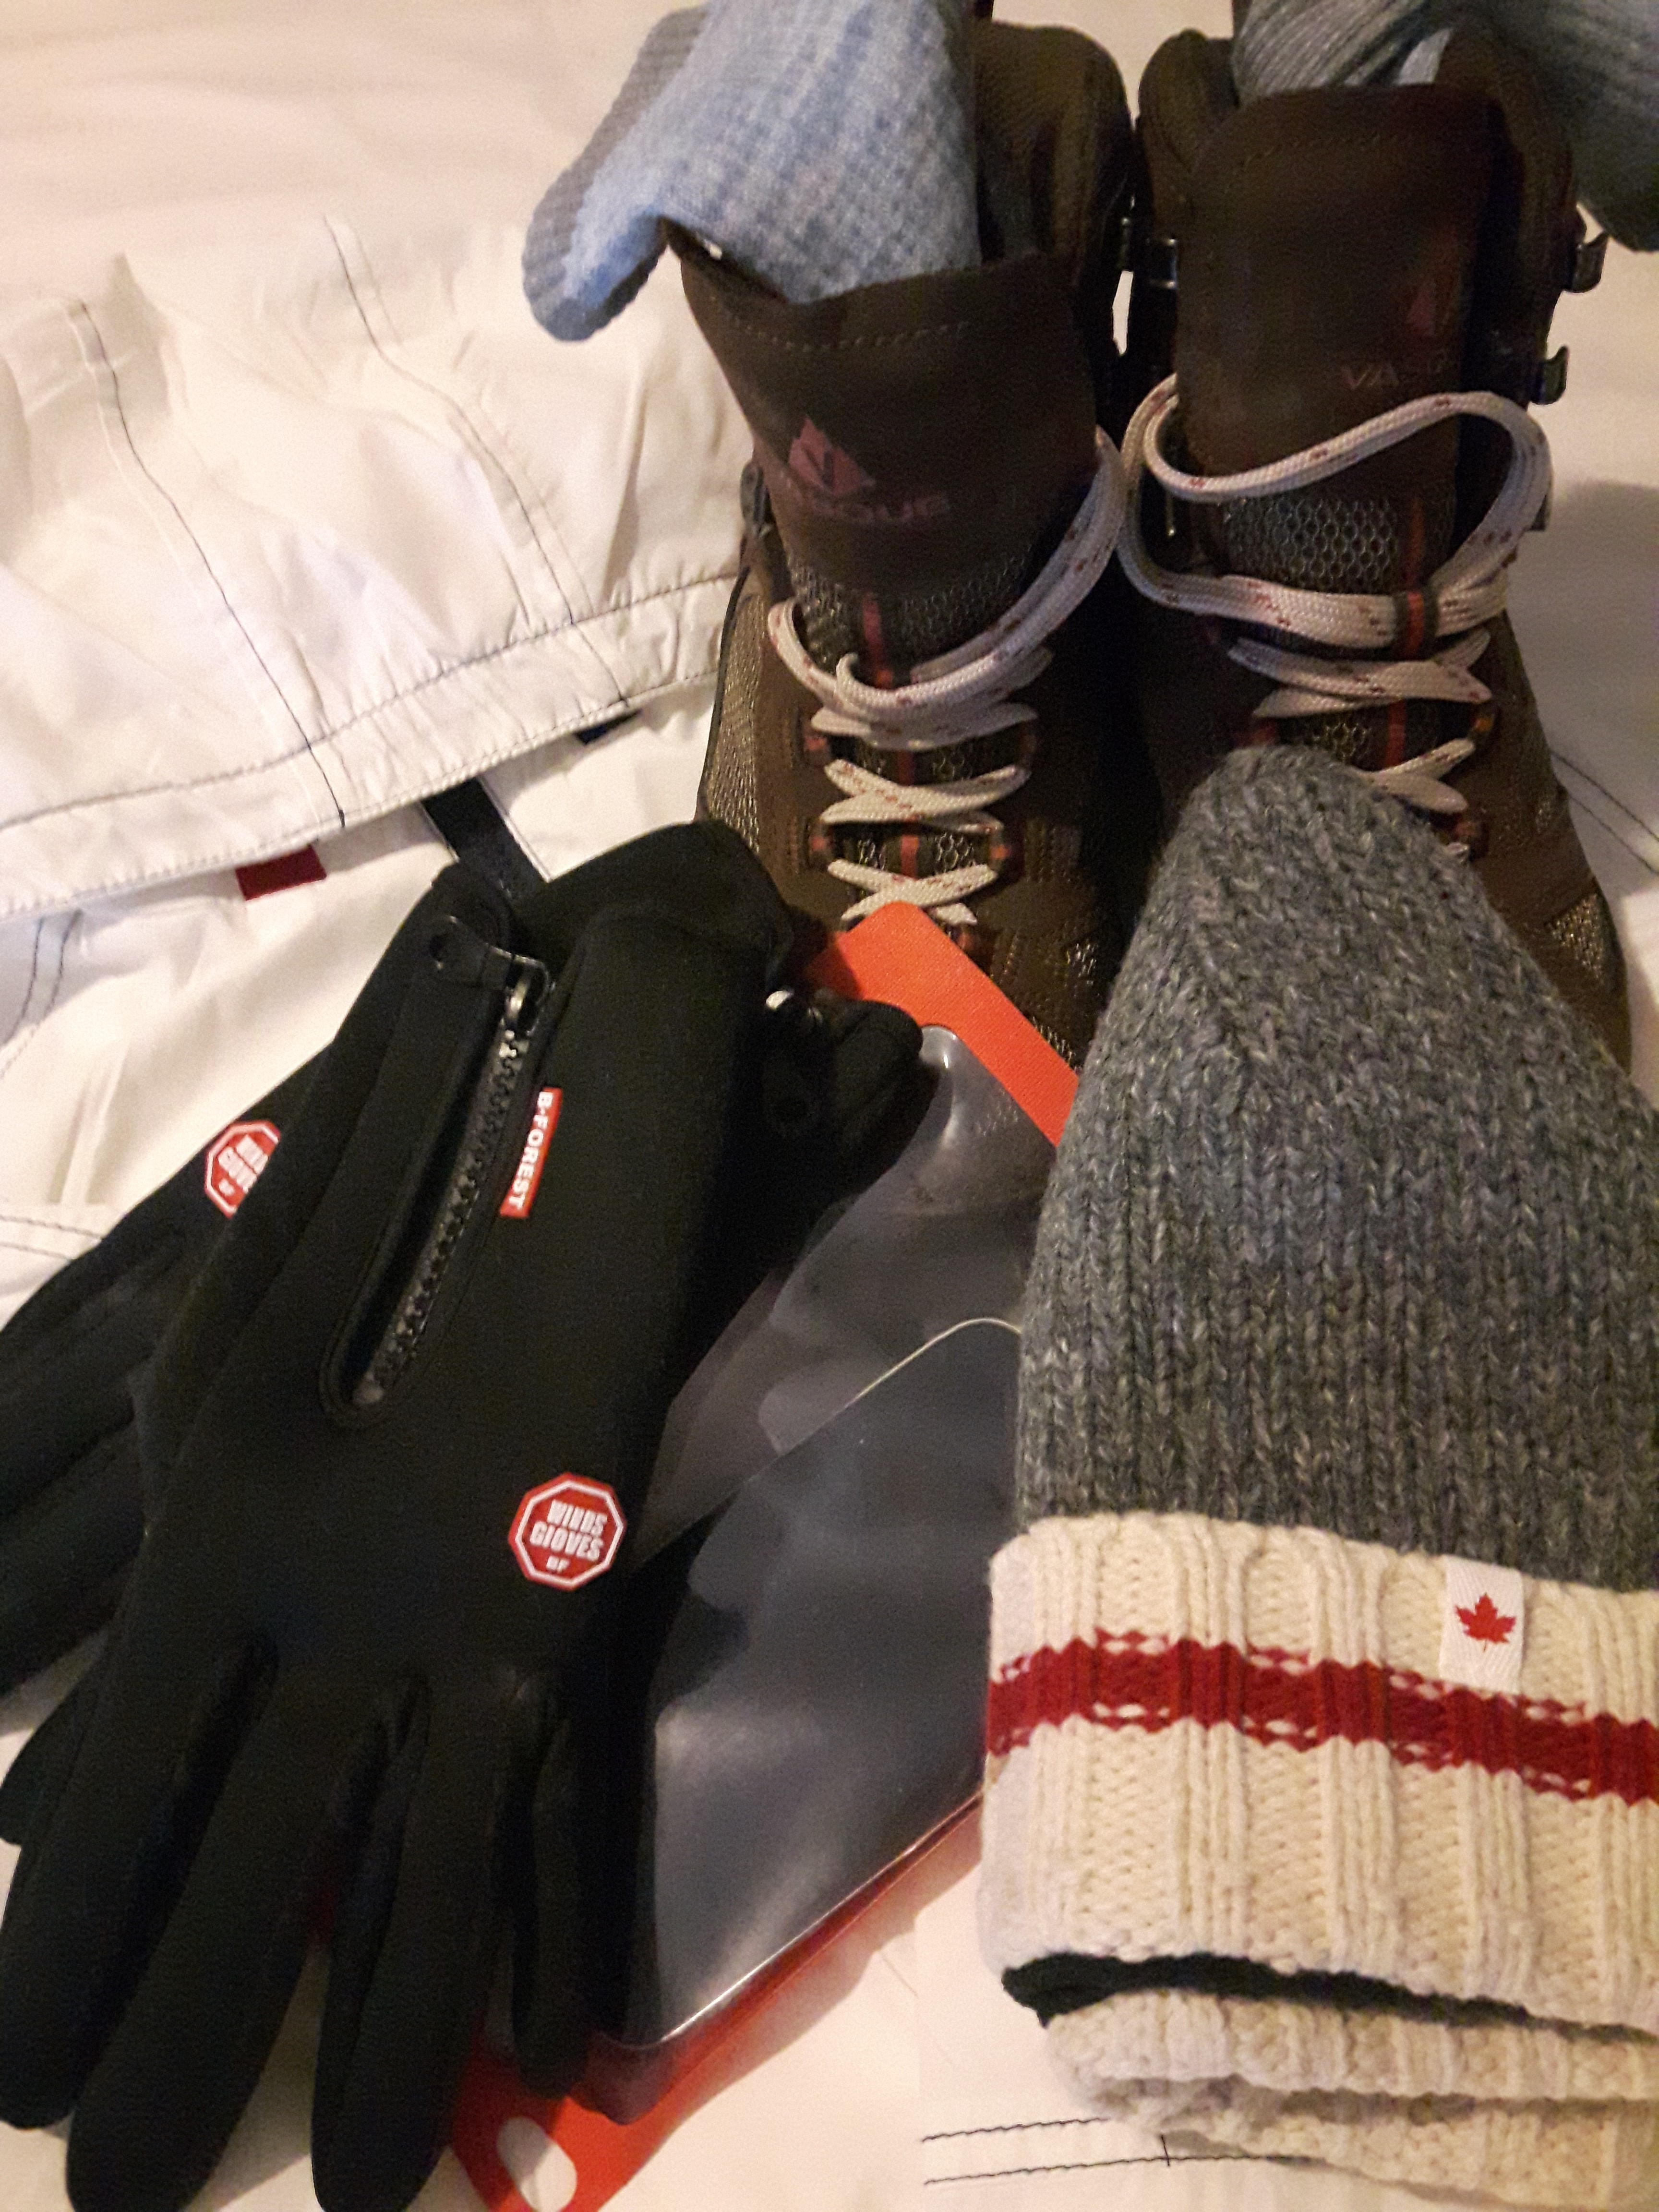 packing for Alaska - outer layer